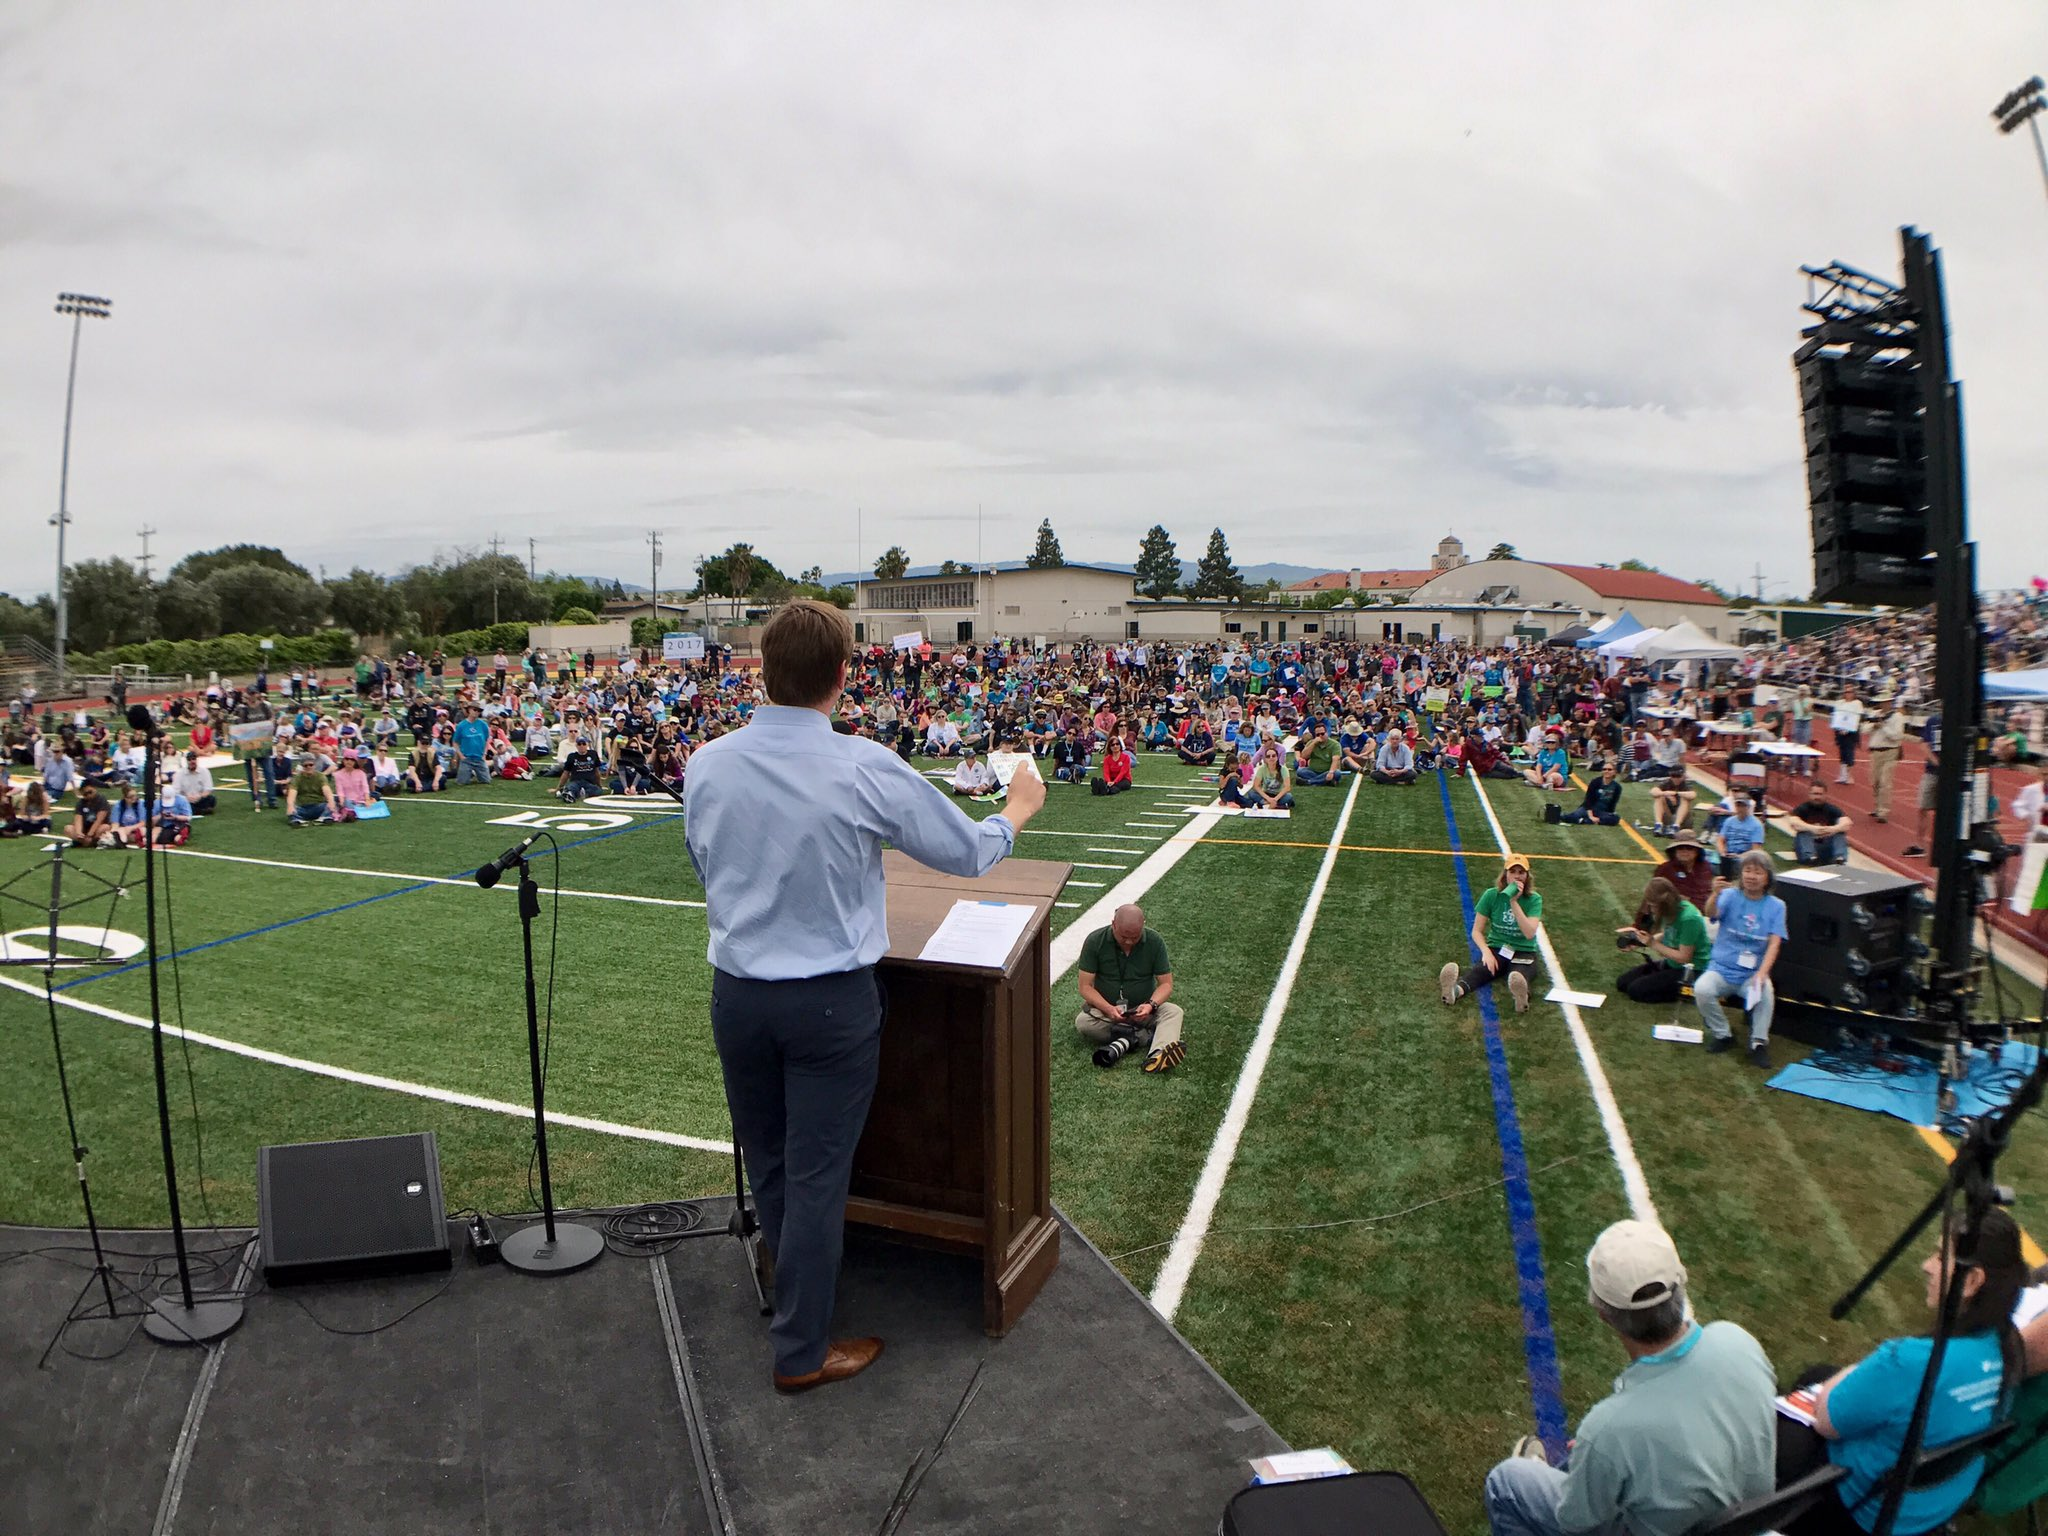 Great, gratifying turnout today at the #Livermore #MarchForScience. https://t.co/C5QPv5yX5m